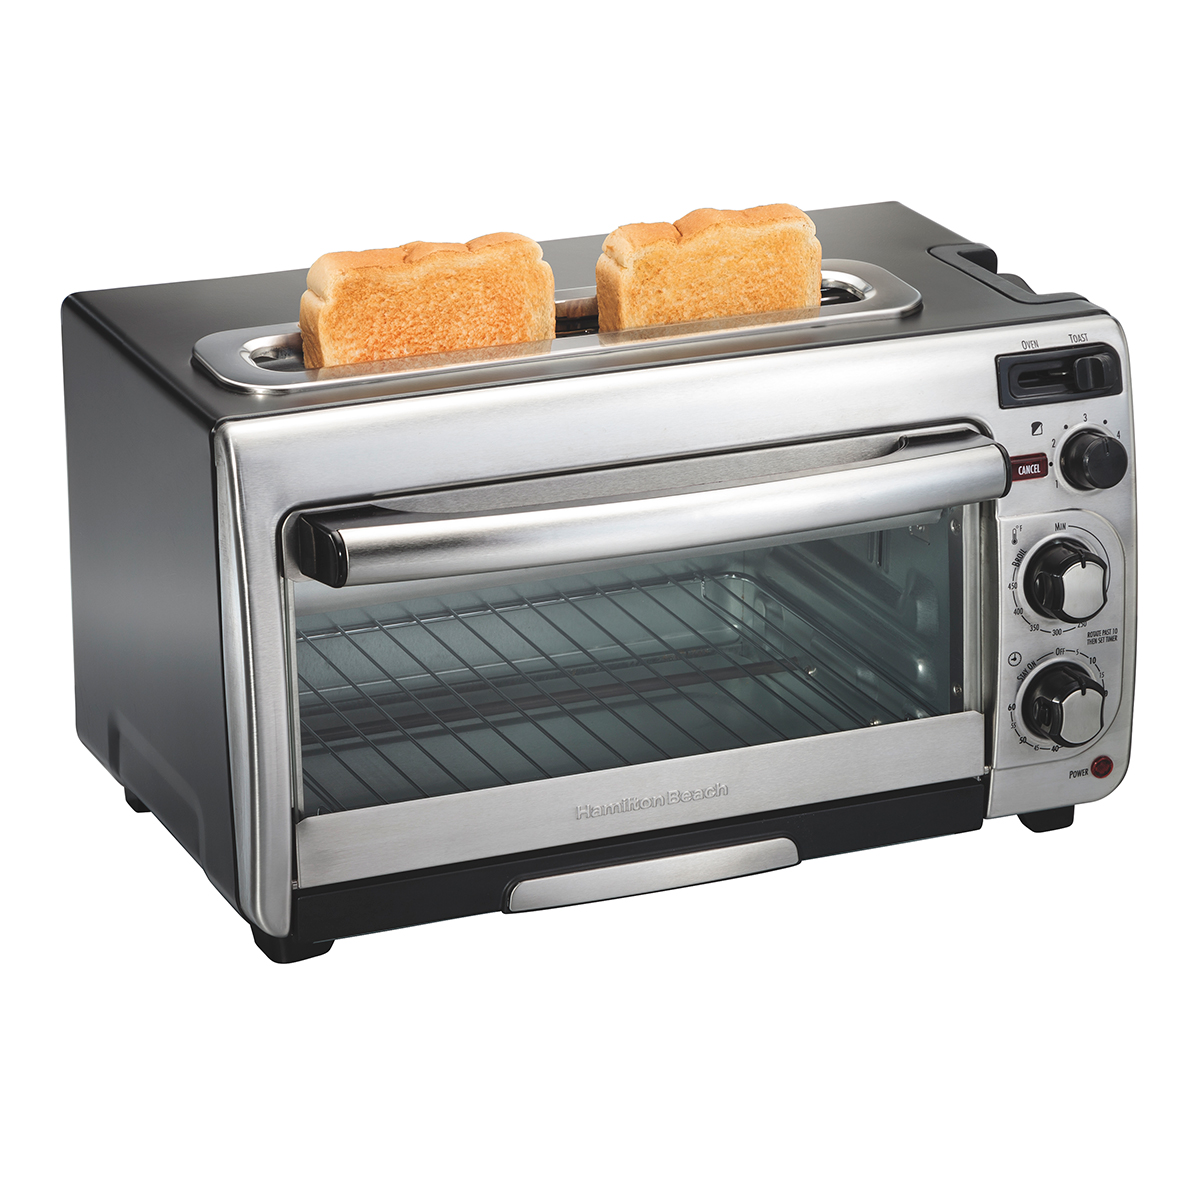 2-in-1 Oven and Toaster (31156)